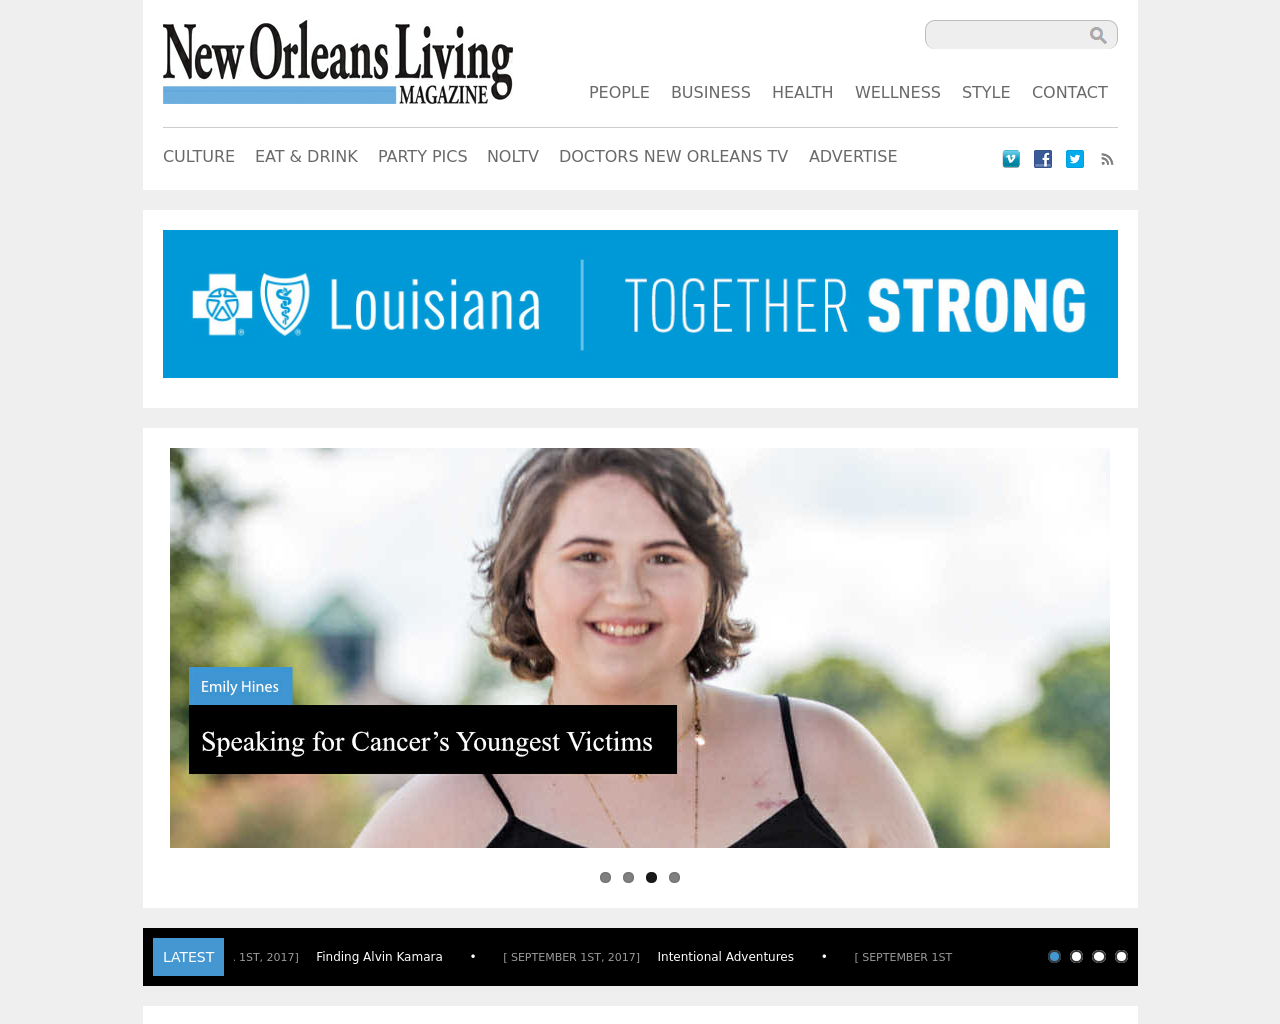 New-Orleans-Living-Magazine-Advertising-Reviews-Pricing